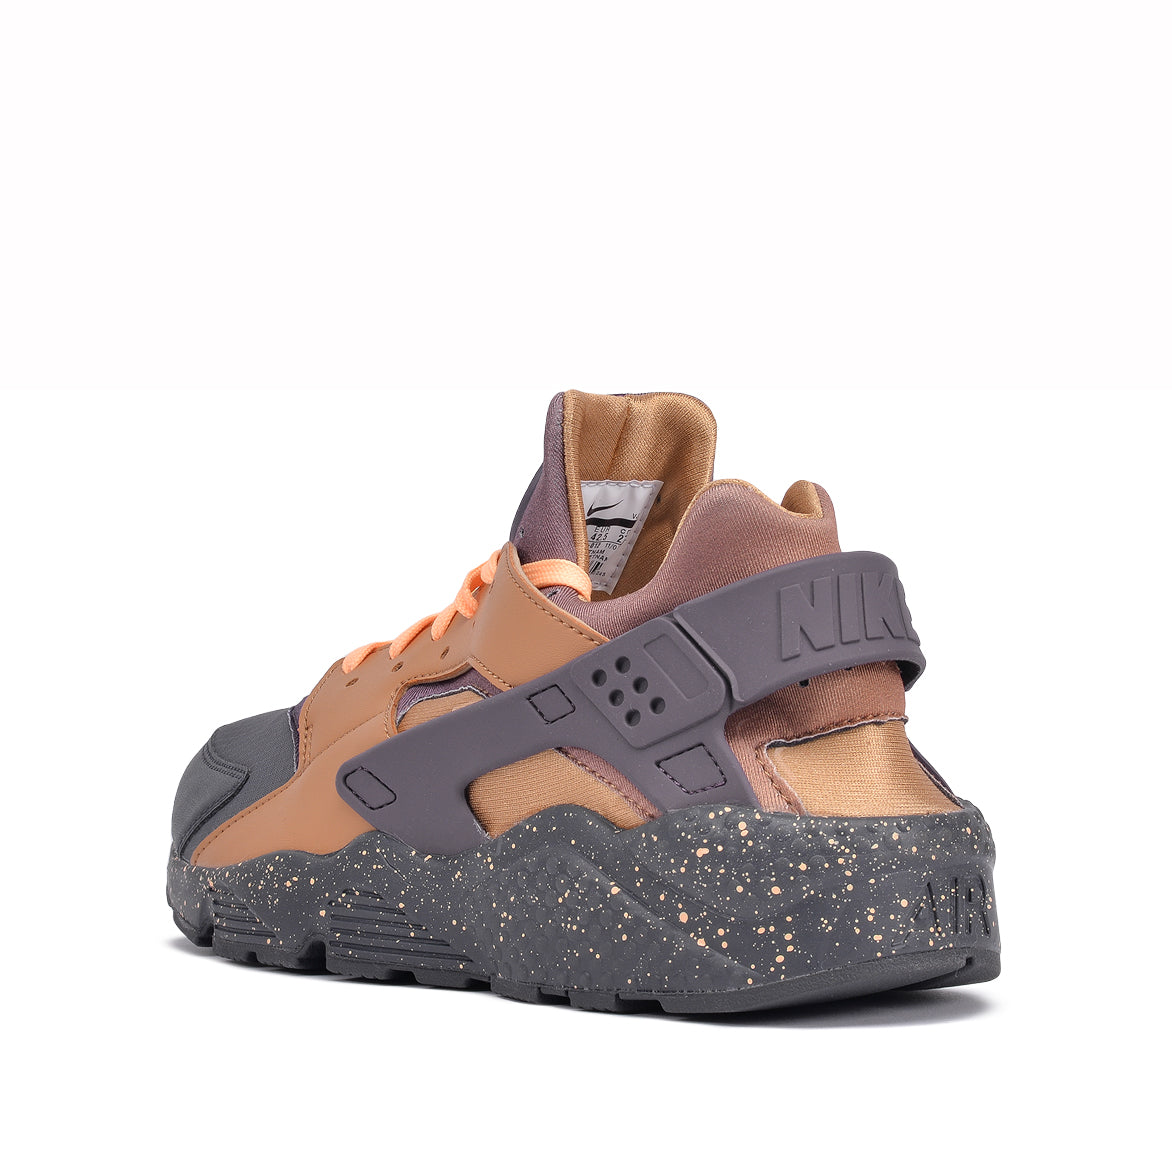 AIR HUARACHE RUN PRM - ANTHRACITE / PRO PURPLE